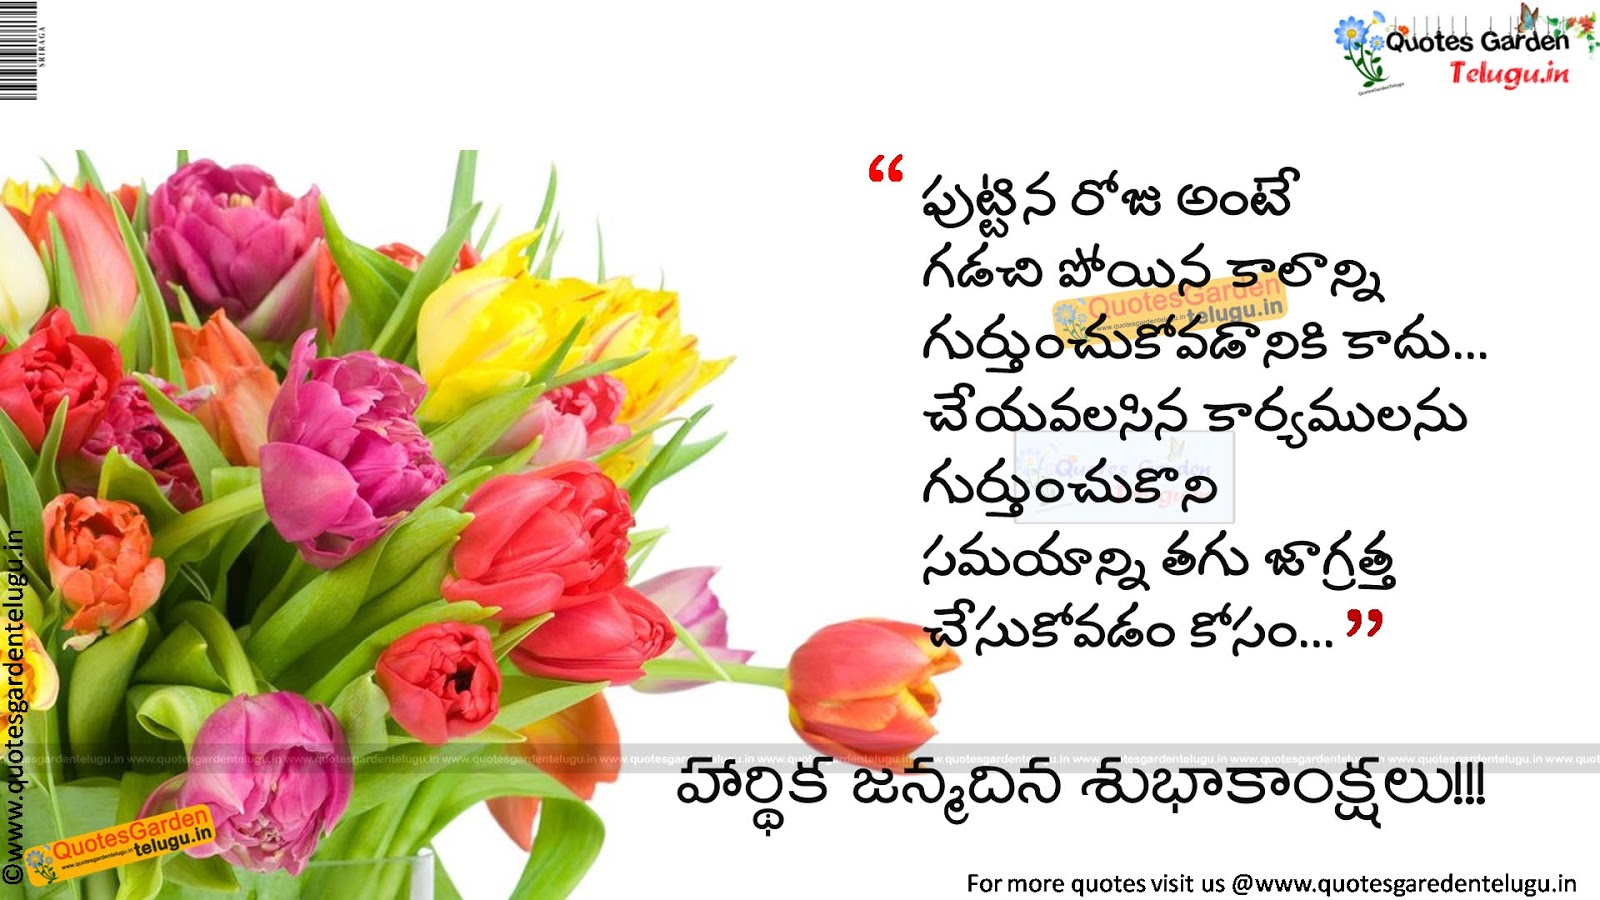 Happy birthday wishes greetings with quotes in telugu 1159 quotes best birthday wishes greetings with quotes in telugu 1159 m4hsunfo